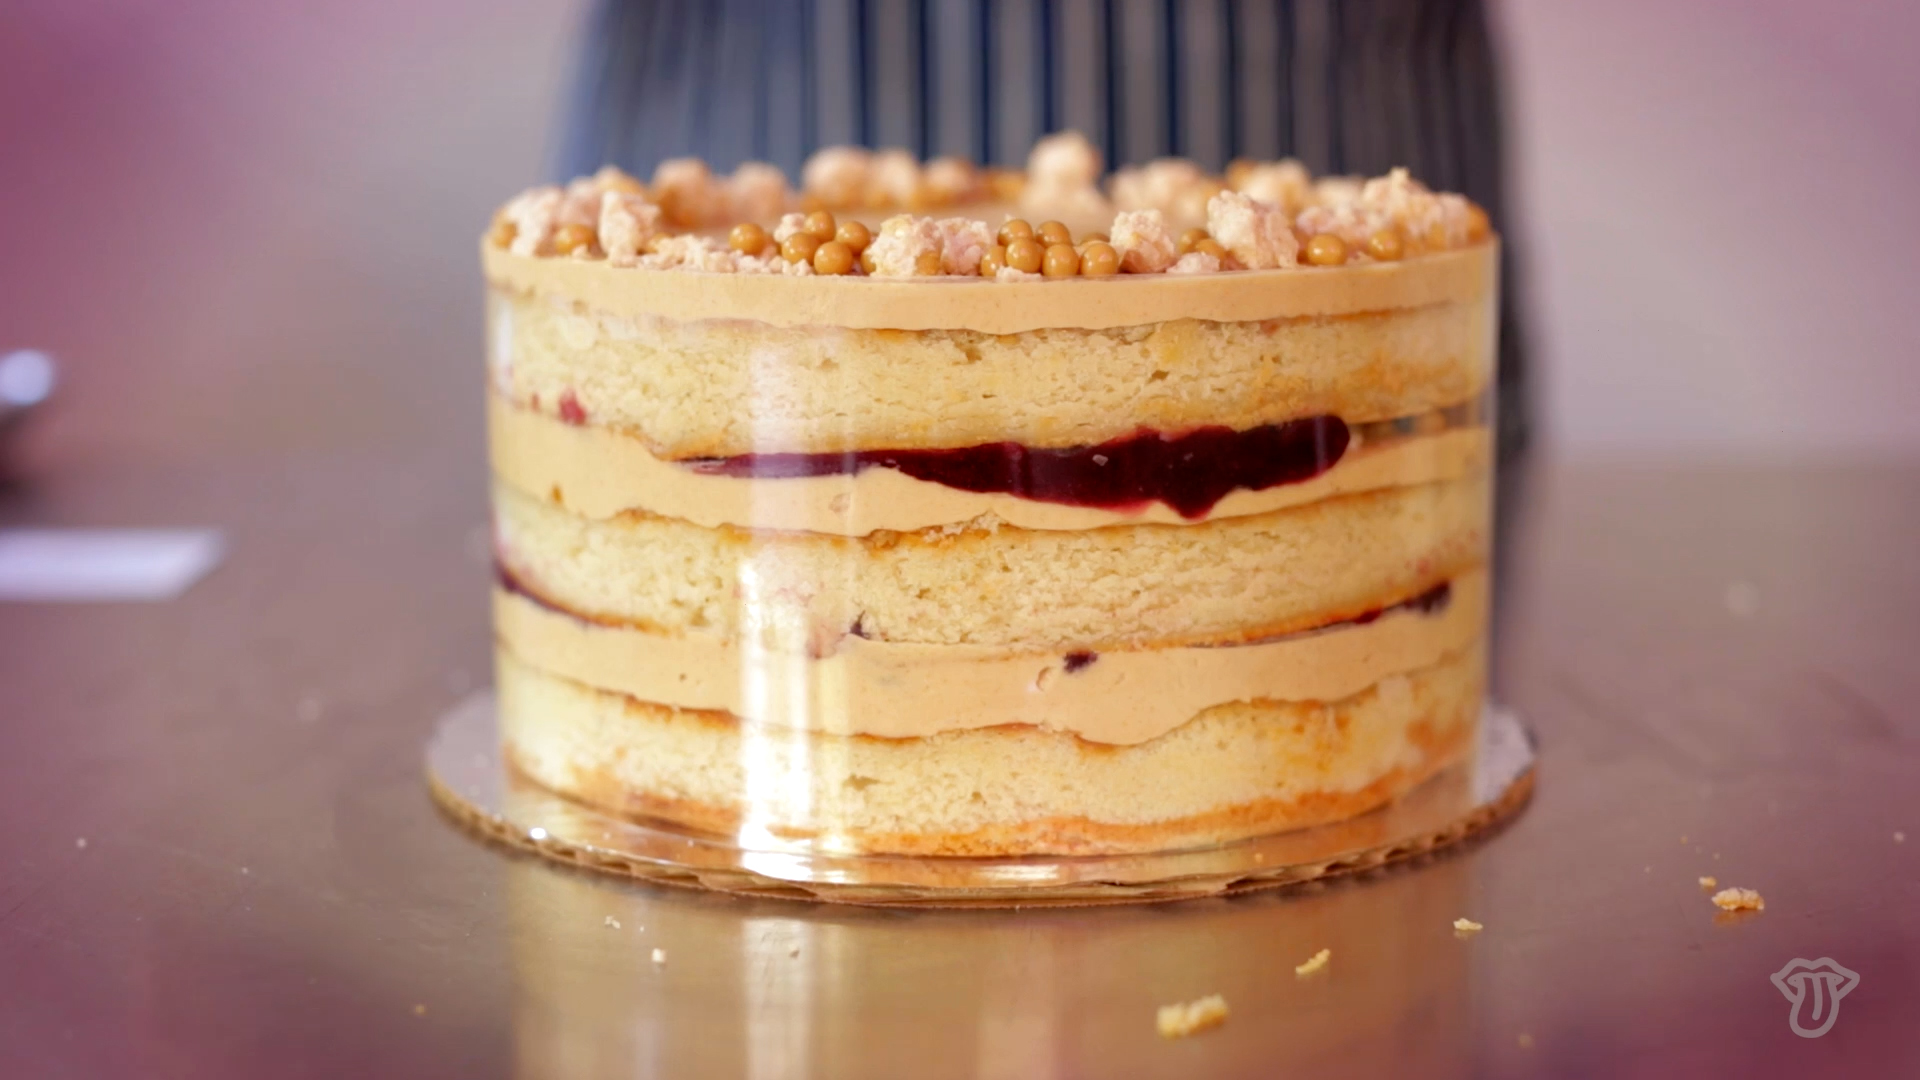 Video: The Ultimate PB&J Cake